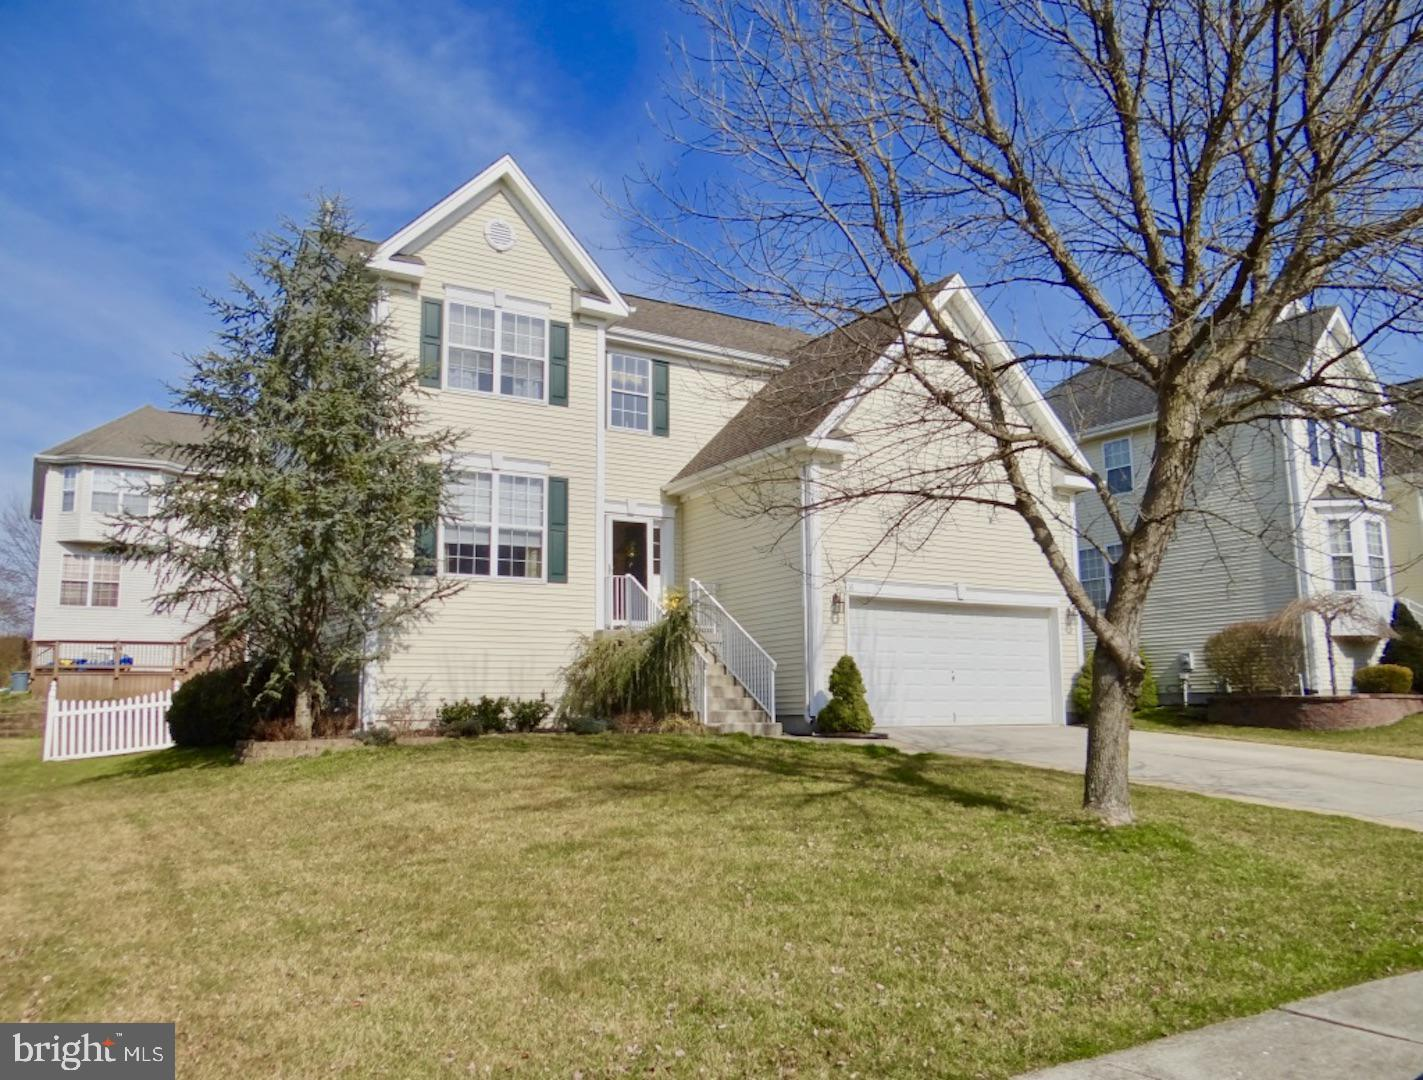 16 LIBERTY TRAIL, DELRAN, NJ 08075